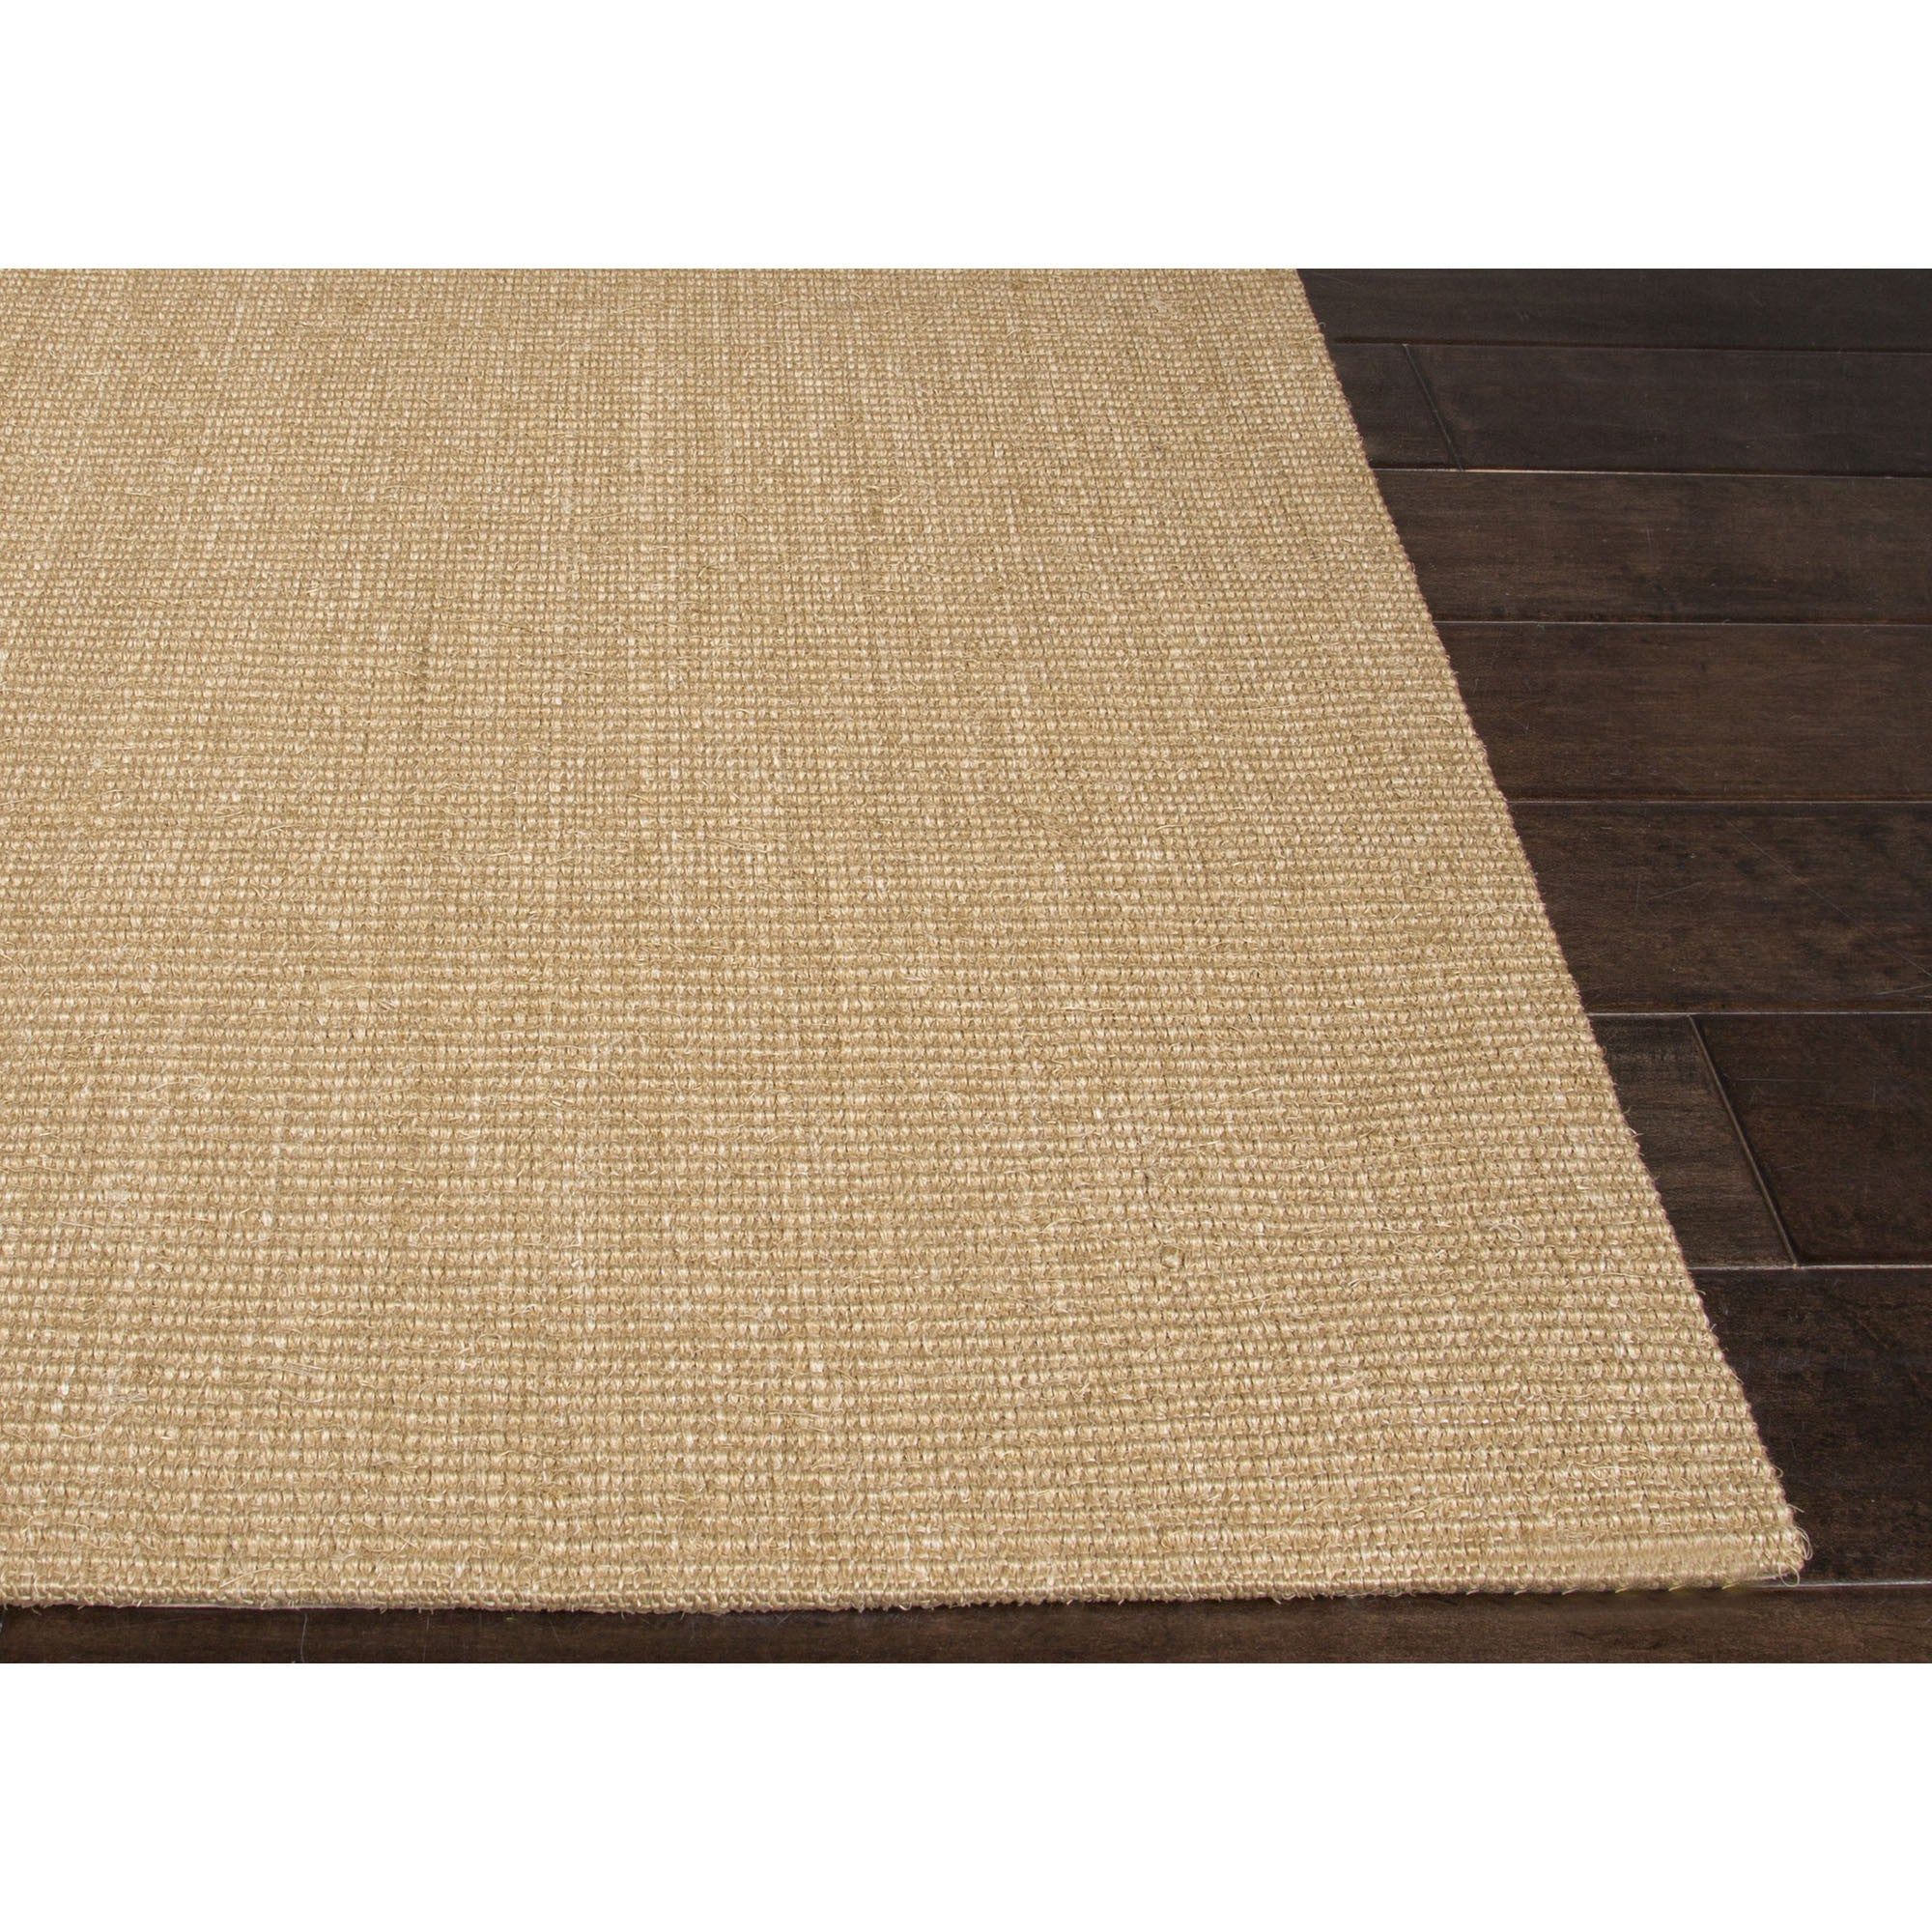 Jaipur Rugs Naturals Solid Pattern Taupe Tan Sisal Area